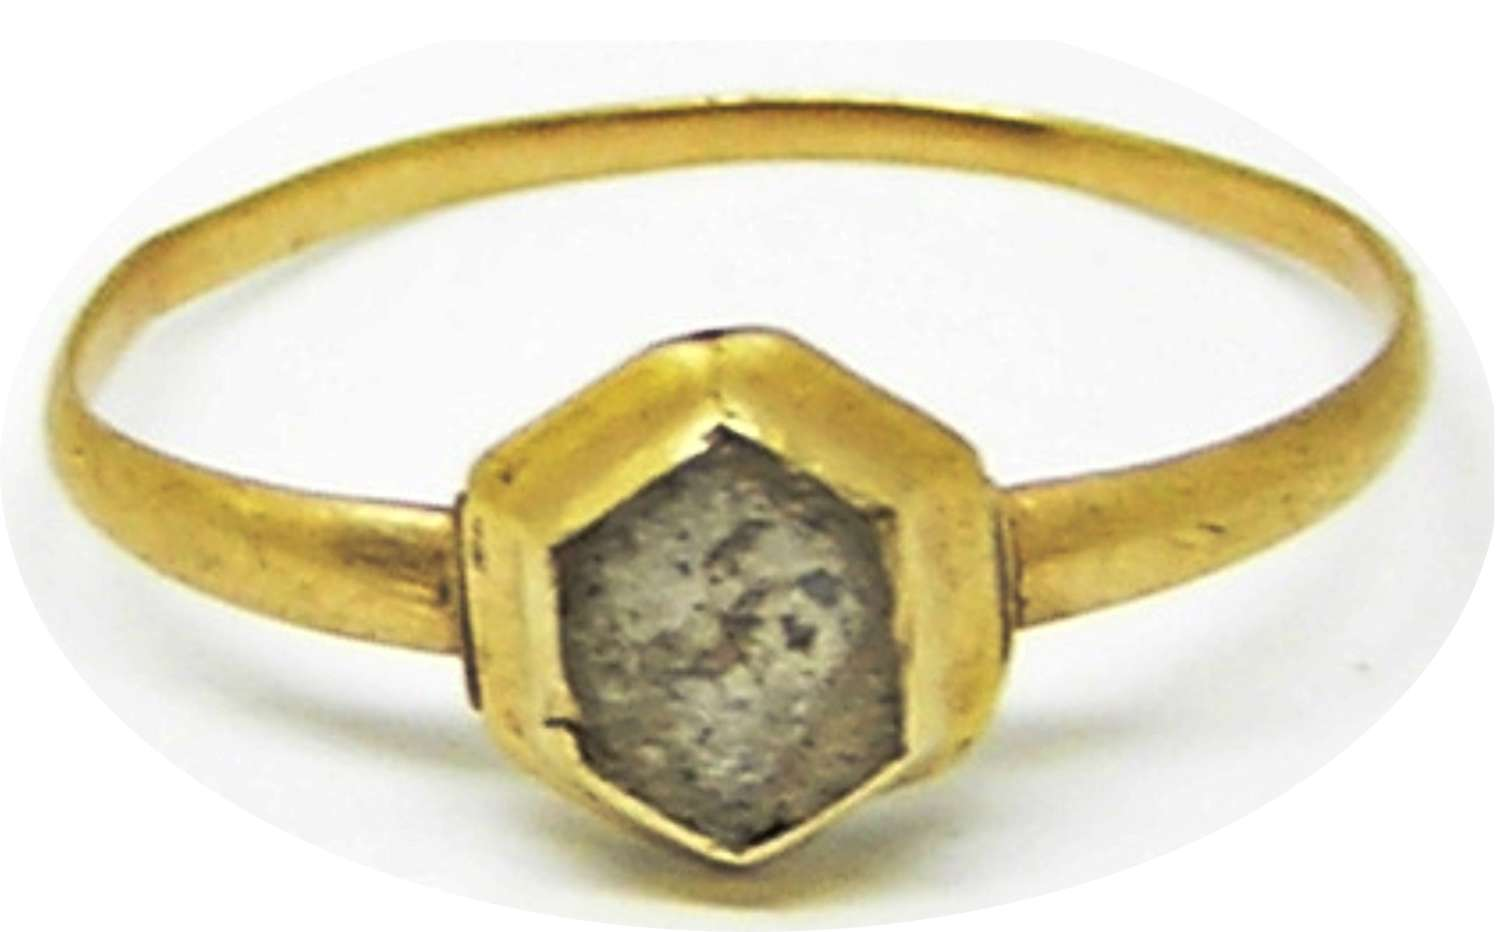 Medieval gold and finger ring in excavated condition